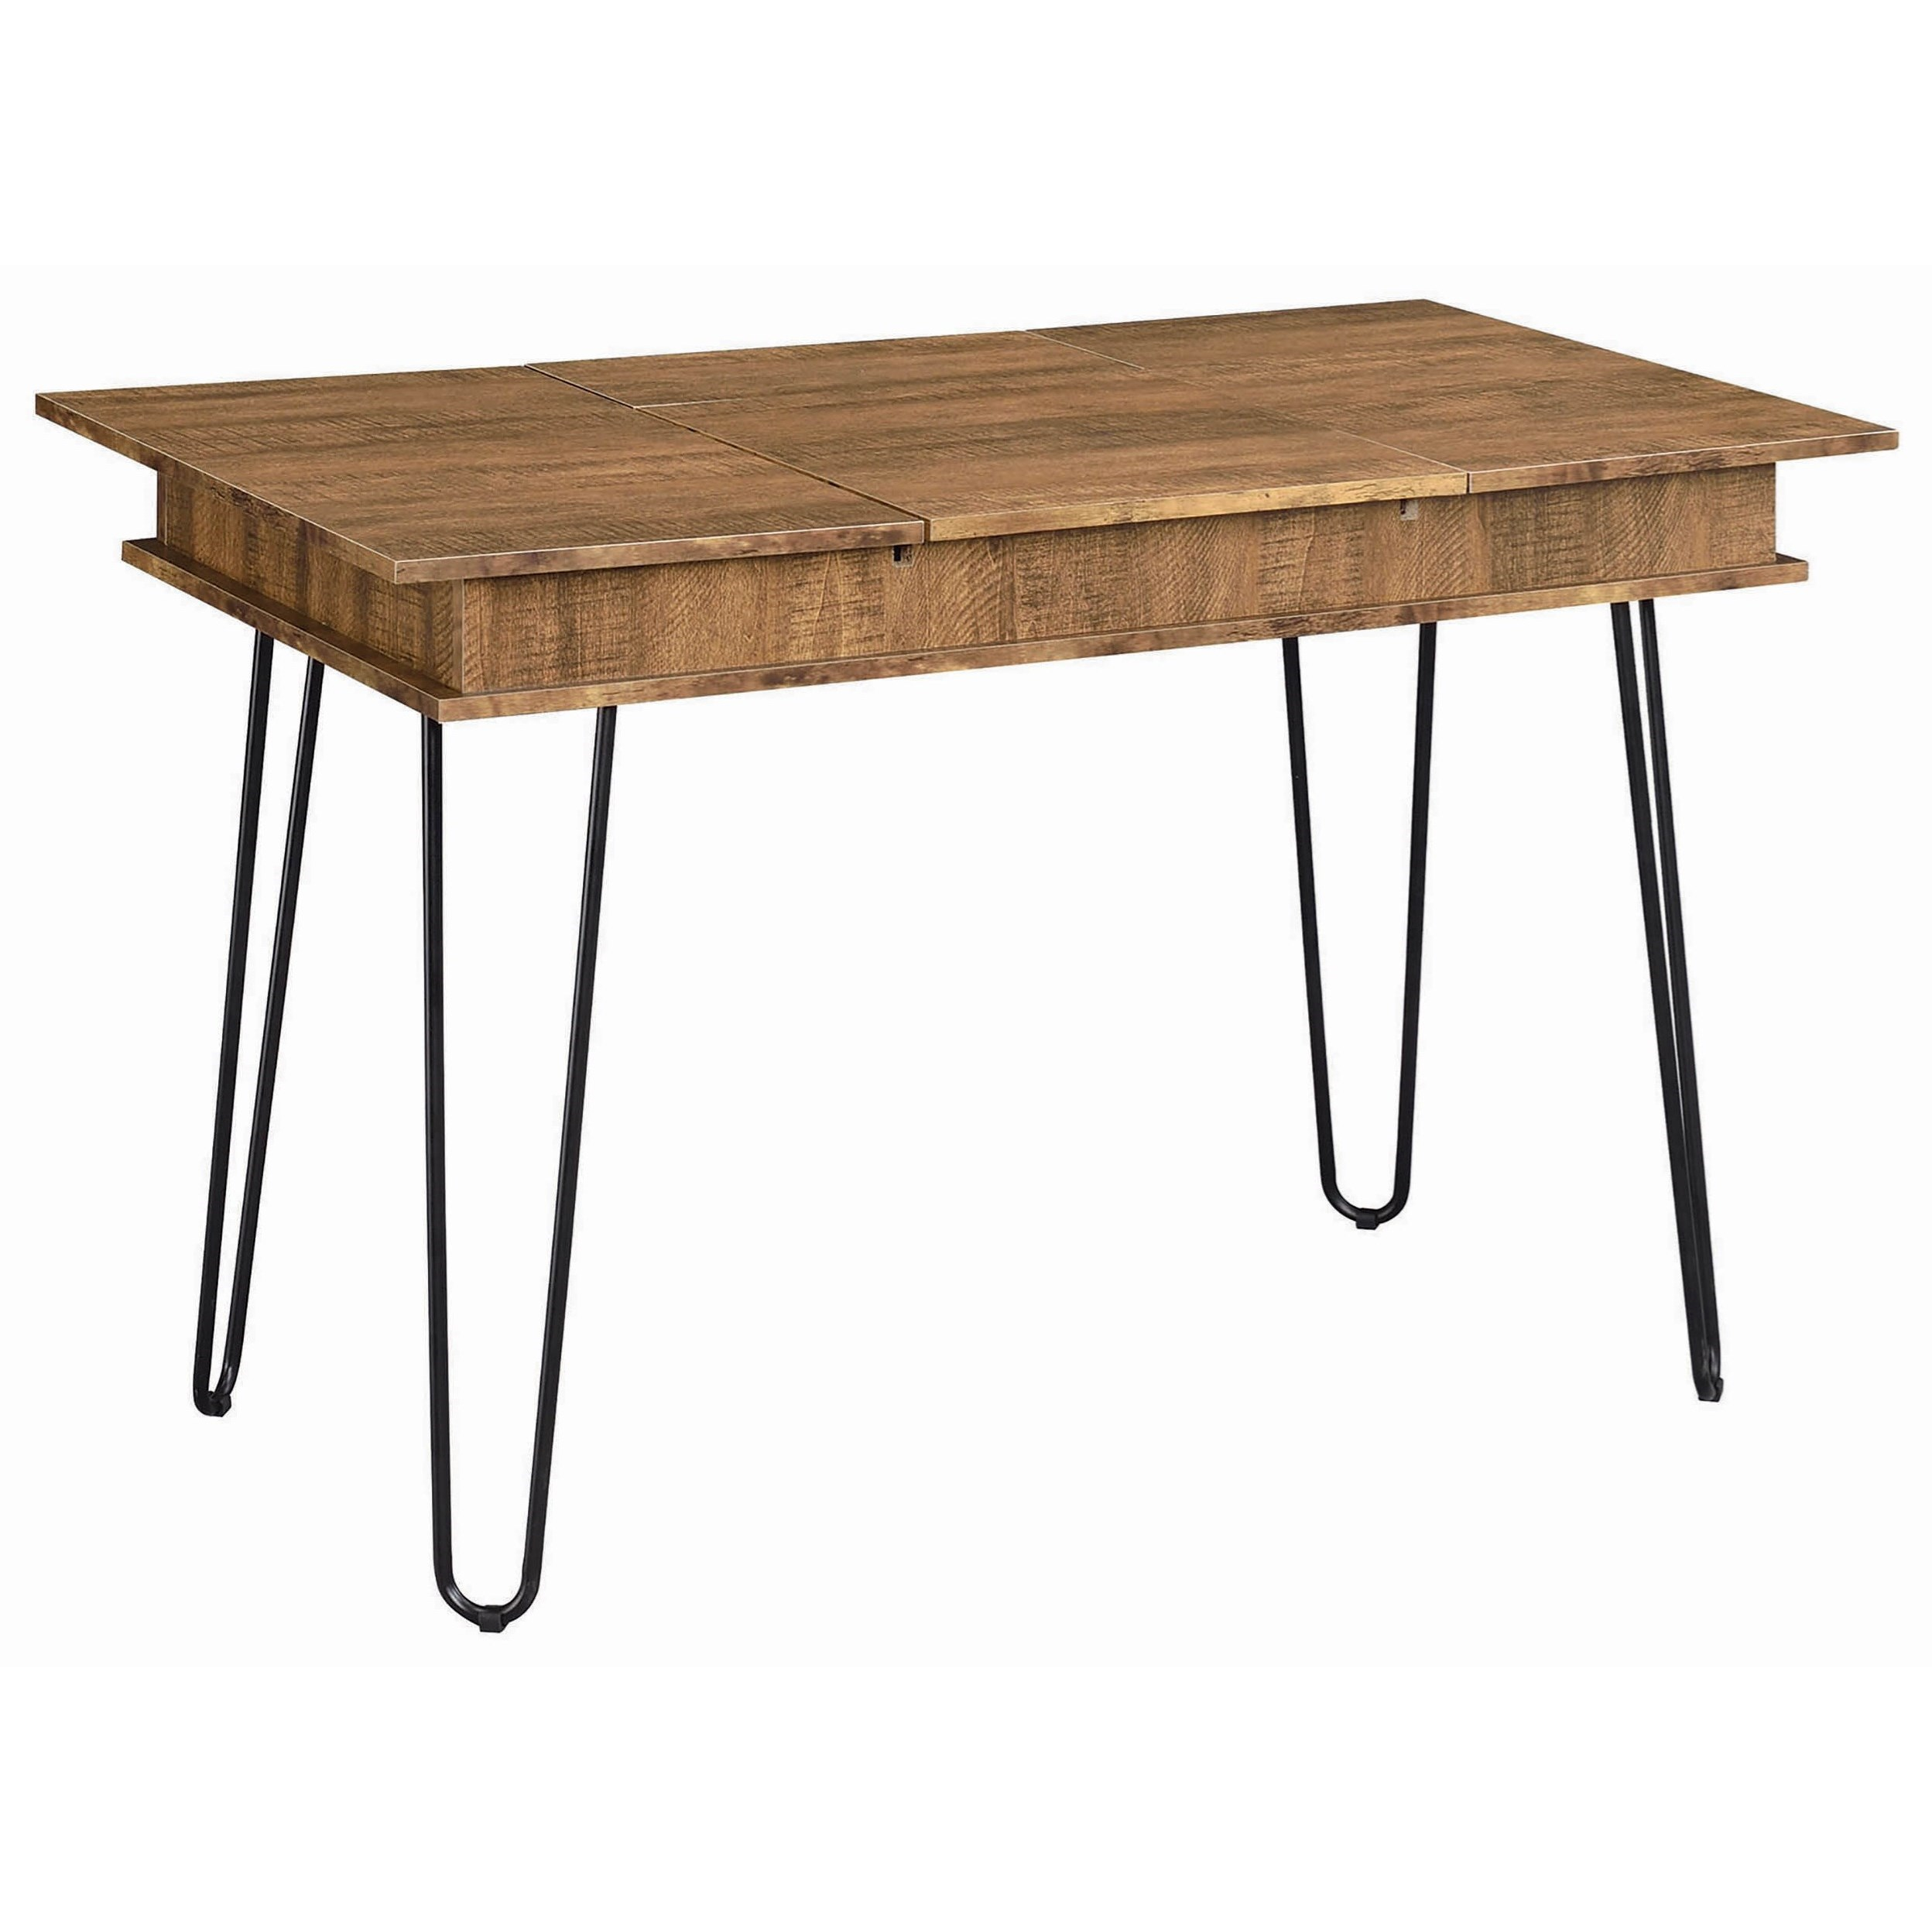 Sheeran Table Desk by Coaster at Northeast Factory Direct